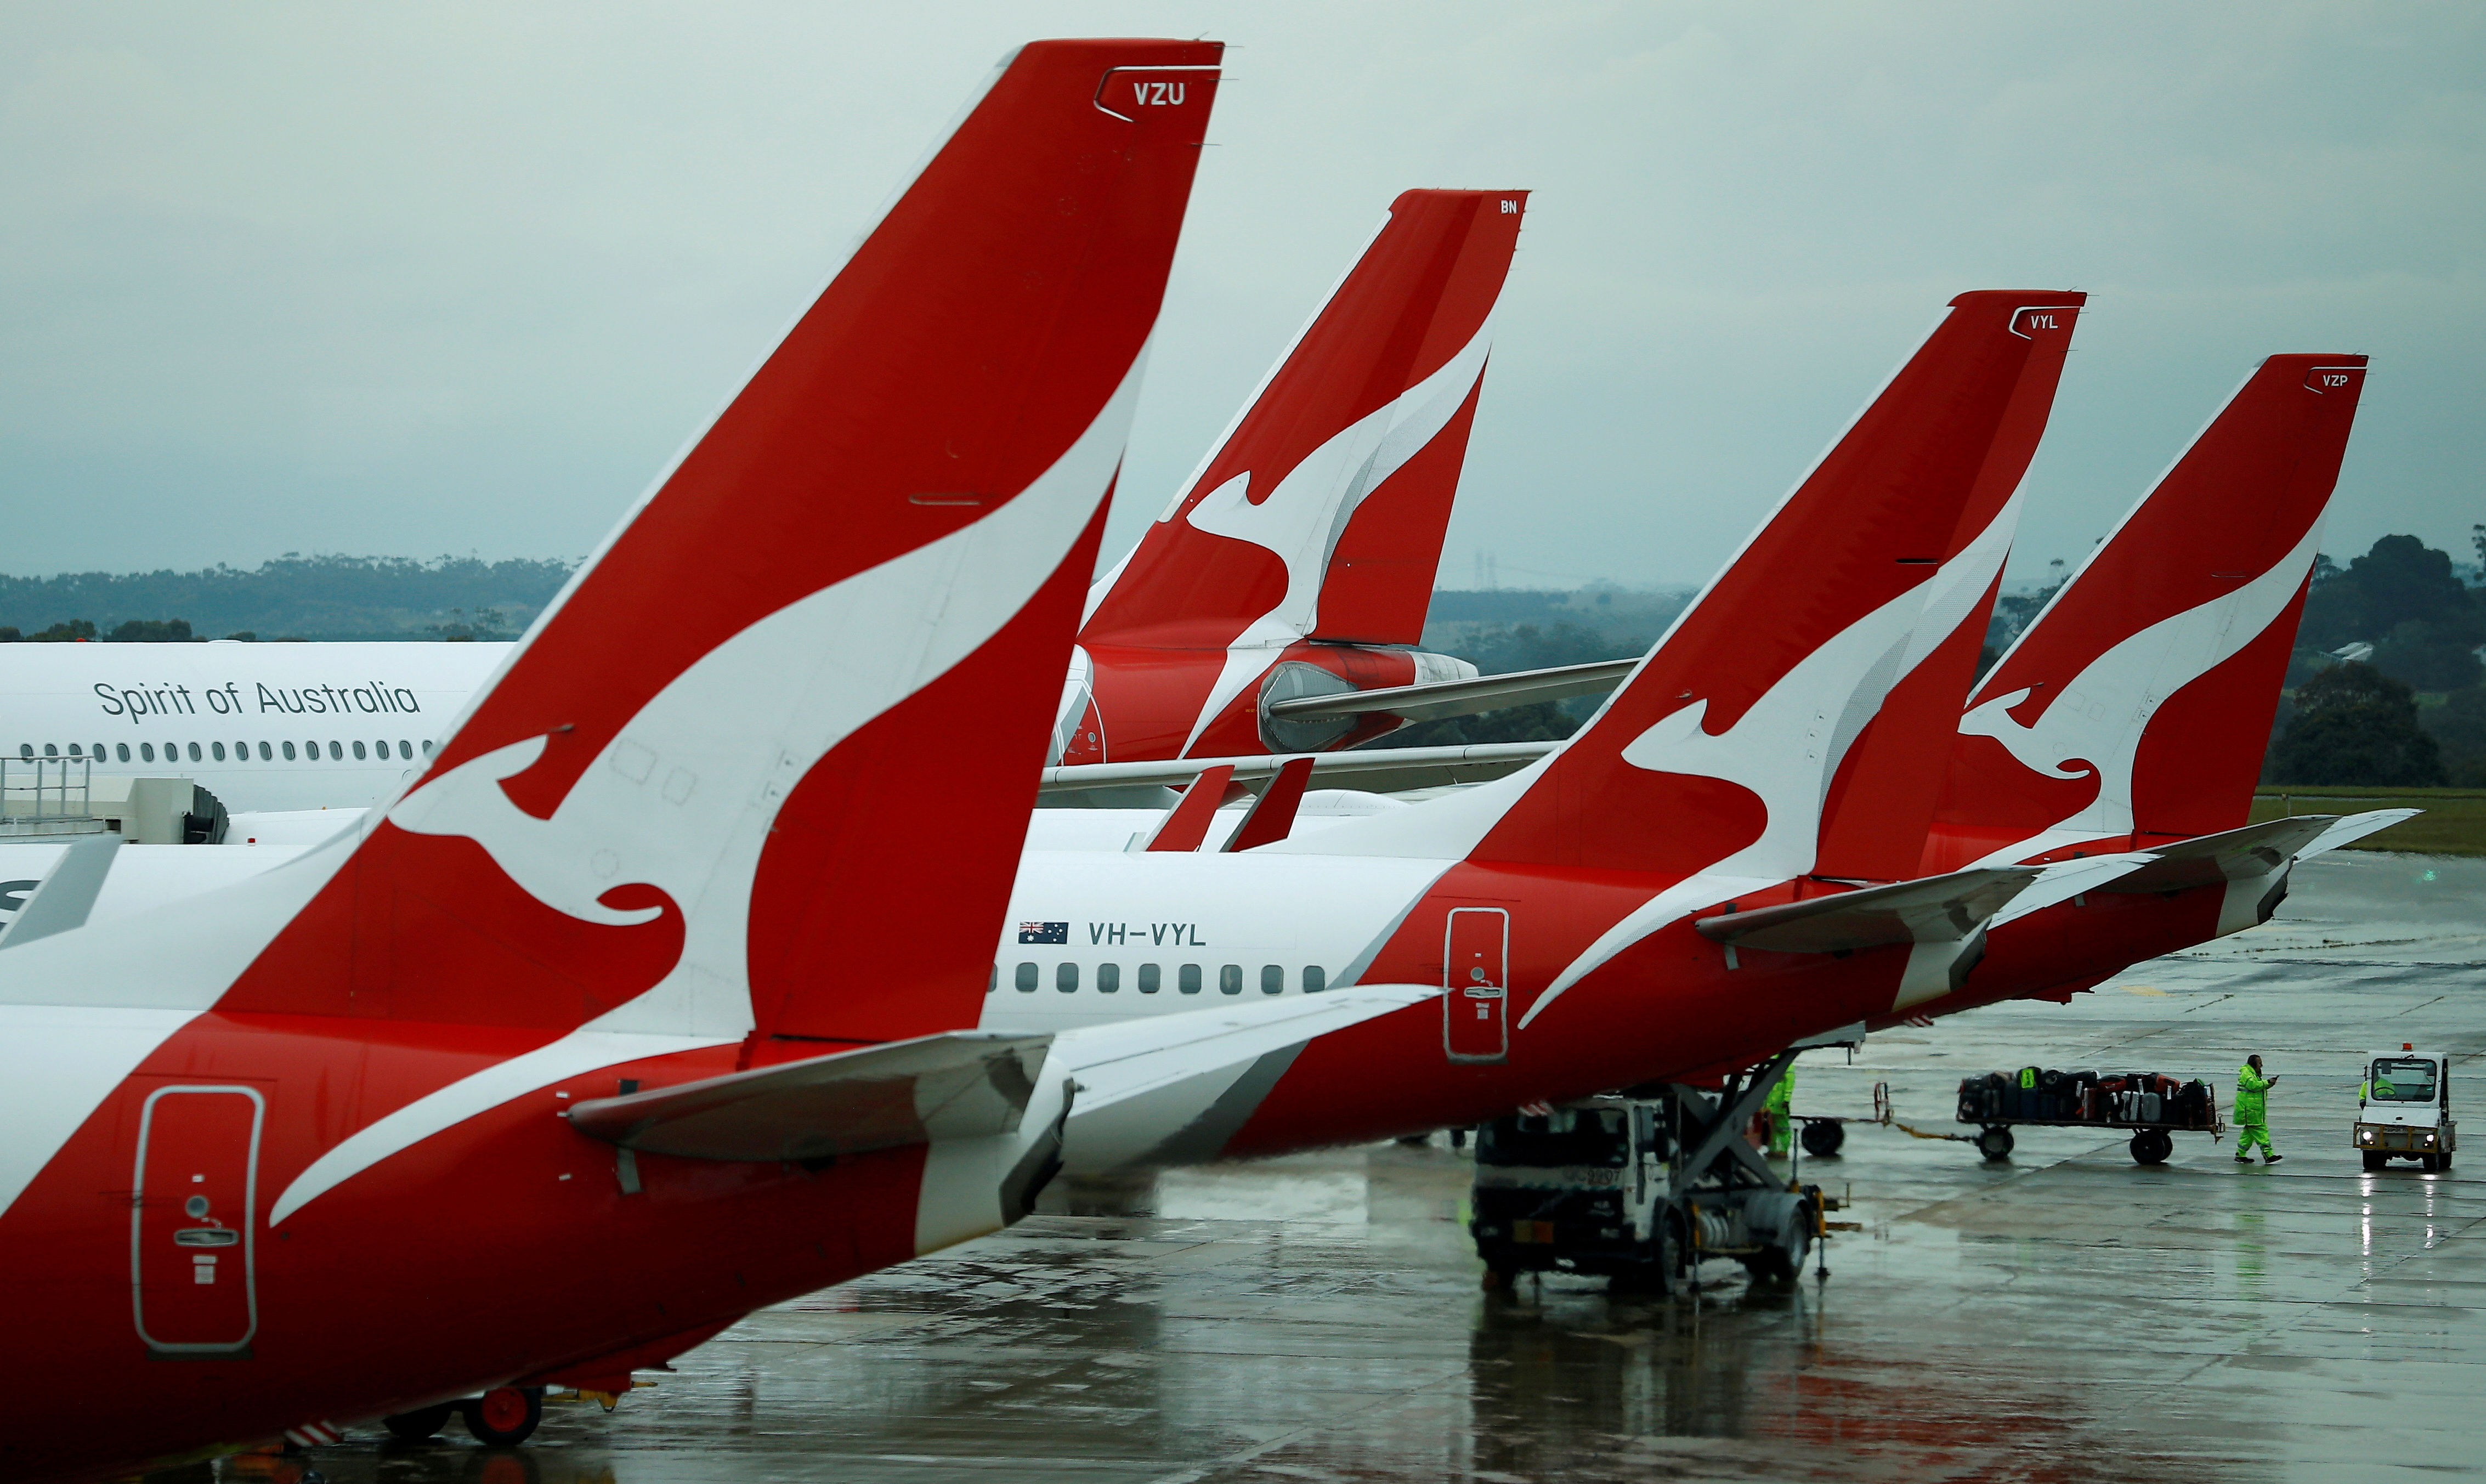 Qantas aircraft are seen on the tarmac at Melbourne International Airport in Melbourne, Australia, November 6, 2018. REUTERS/Phil Noble/File Photo